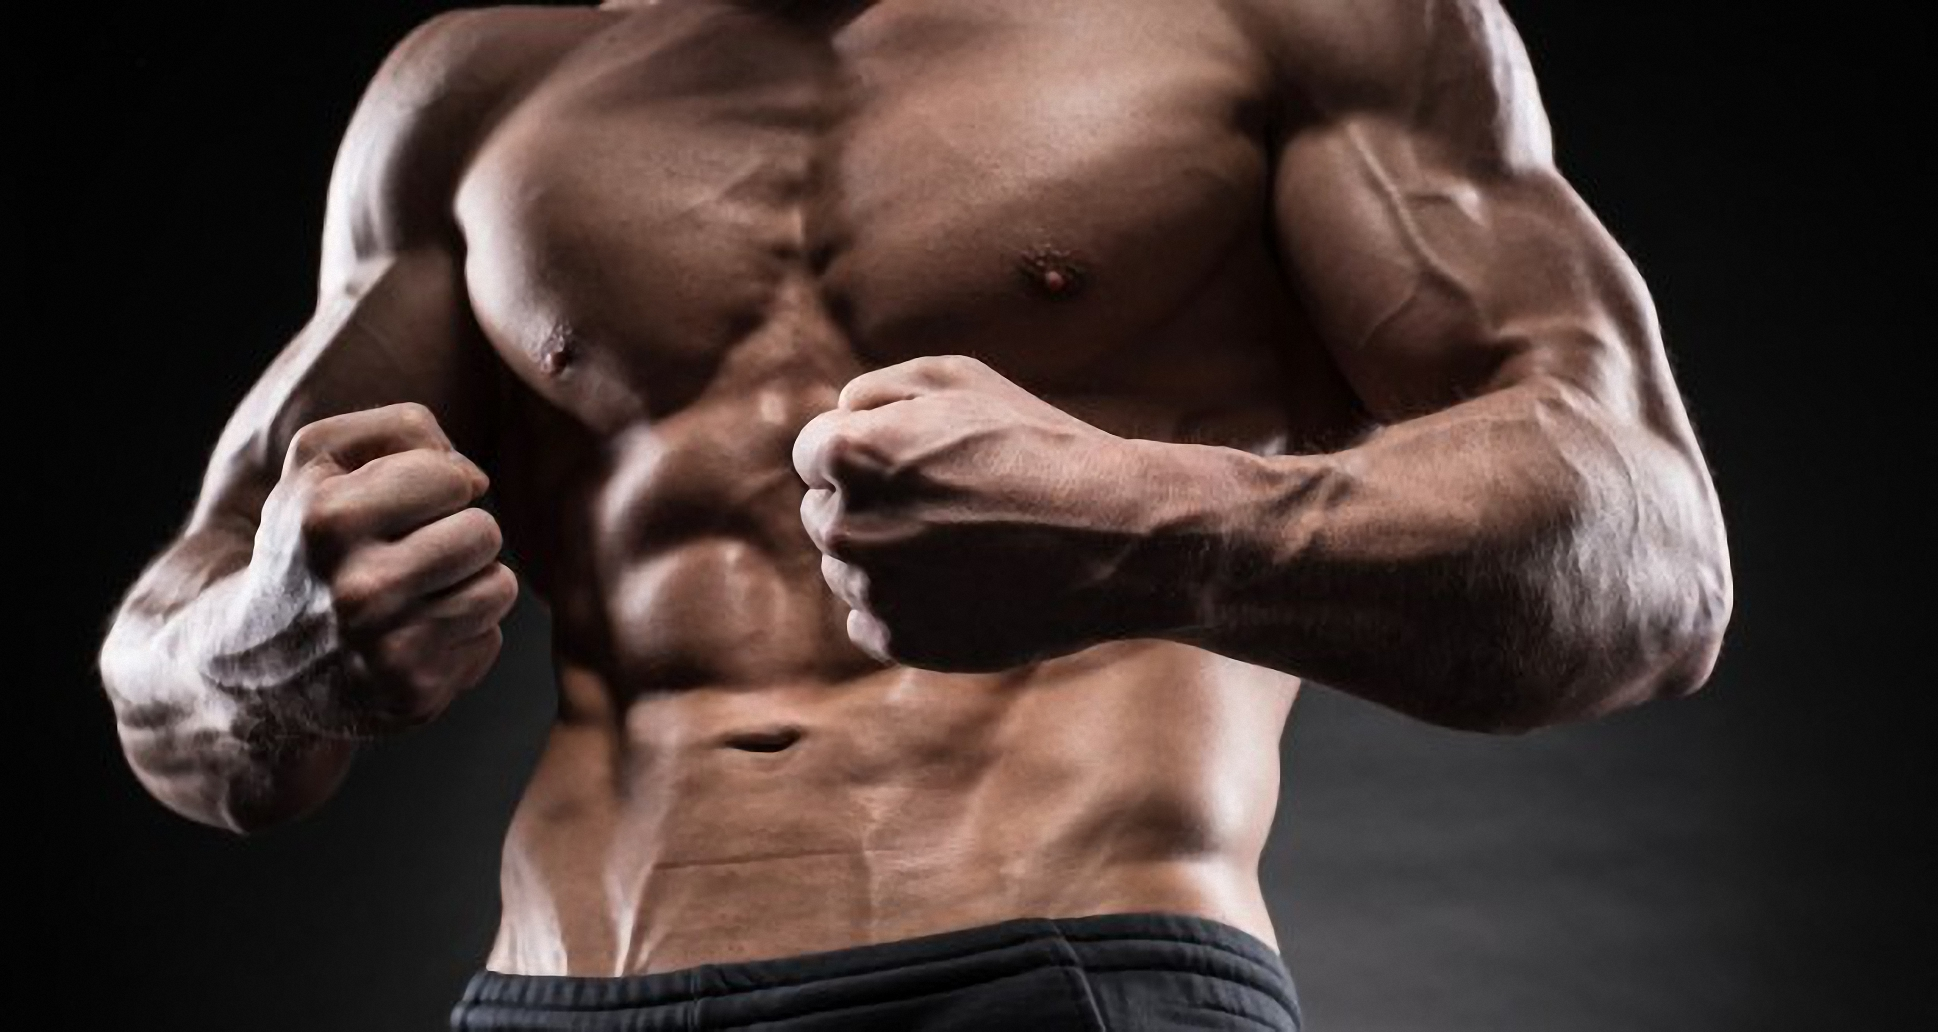 Muscular-young-man-in-studio-on-dark-background-shows-the-different-movements-and-body-parts